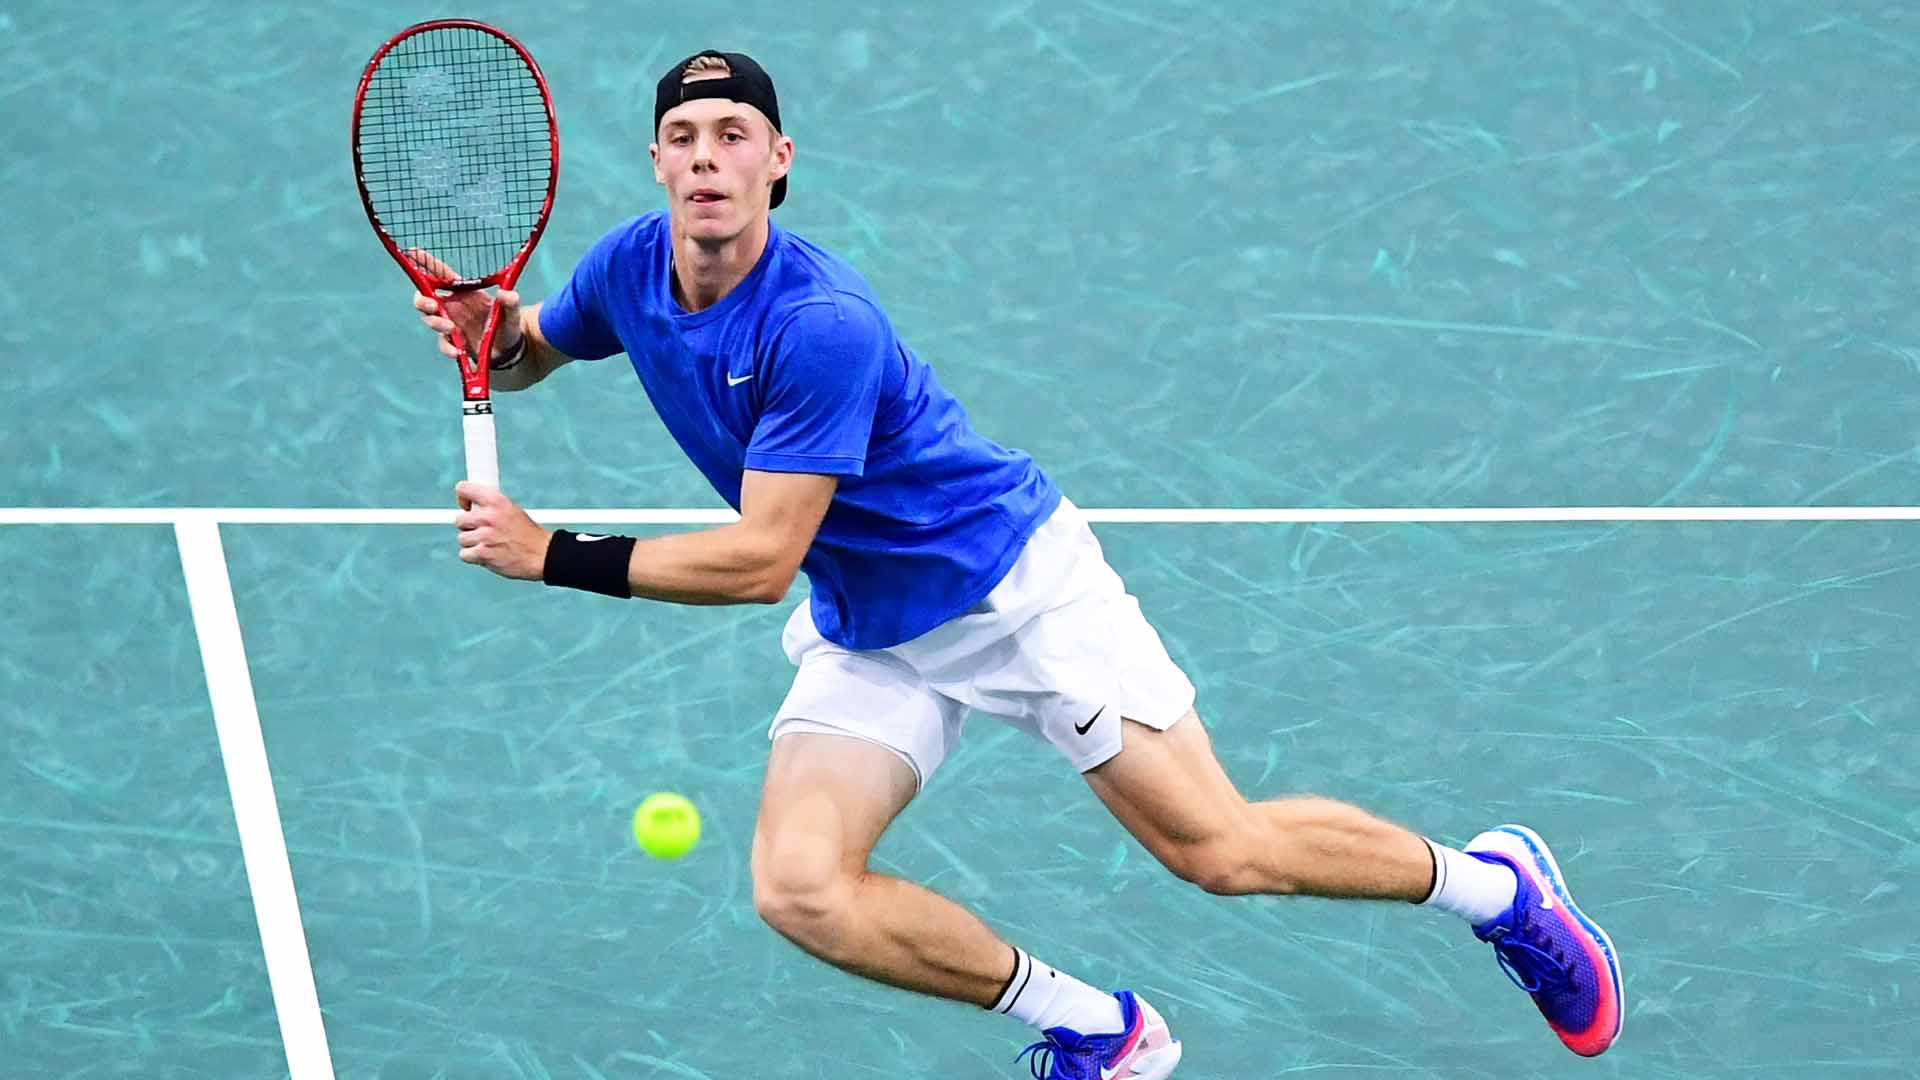 Denis Shapovalov is aiming to lift his first ATP Masters 1000 trophy this week.